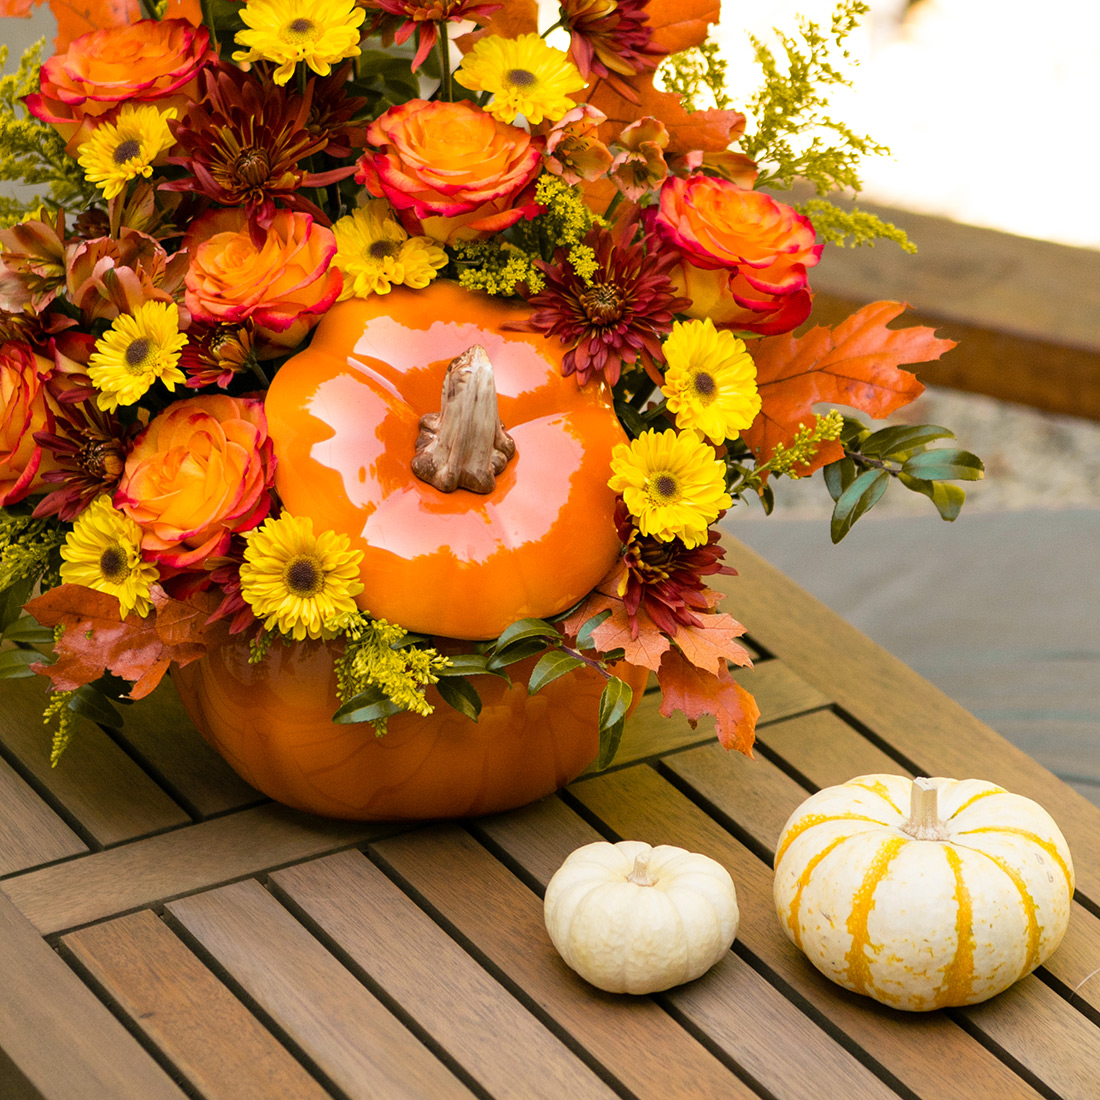 Orange roses, yellow carnations, mums, and more in a pumpkin vase with gords